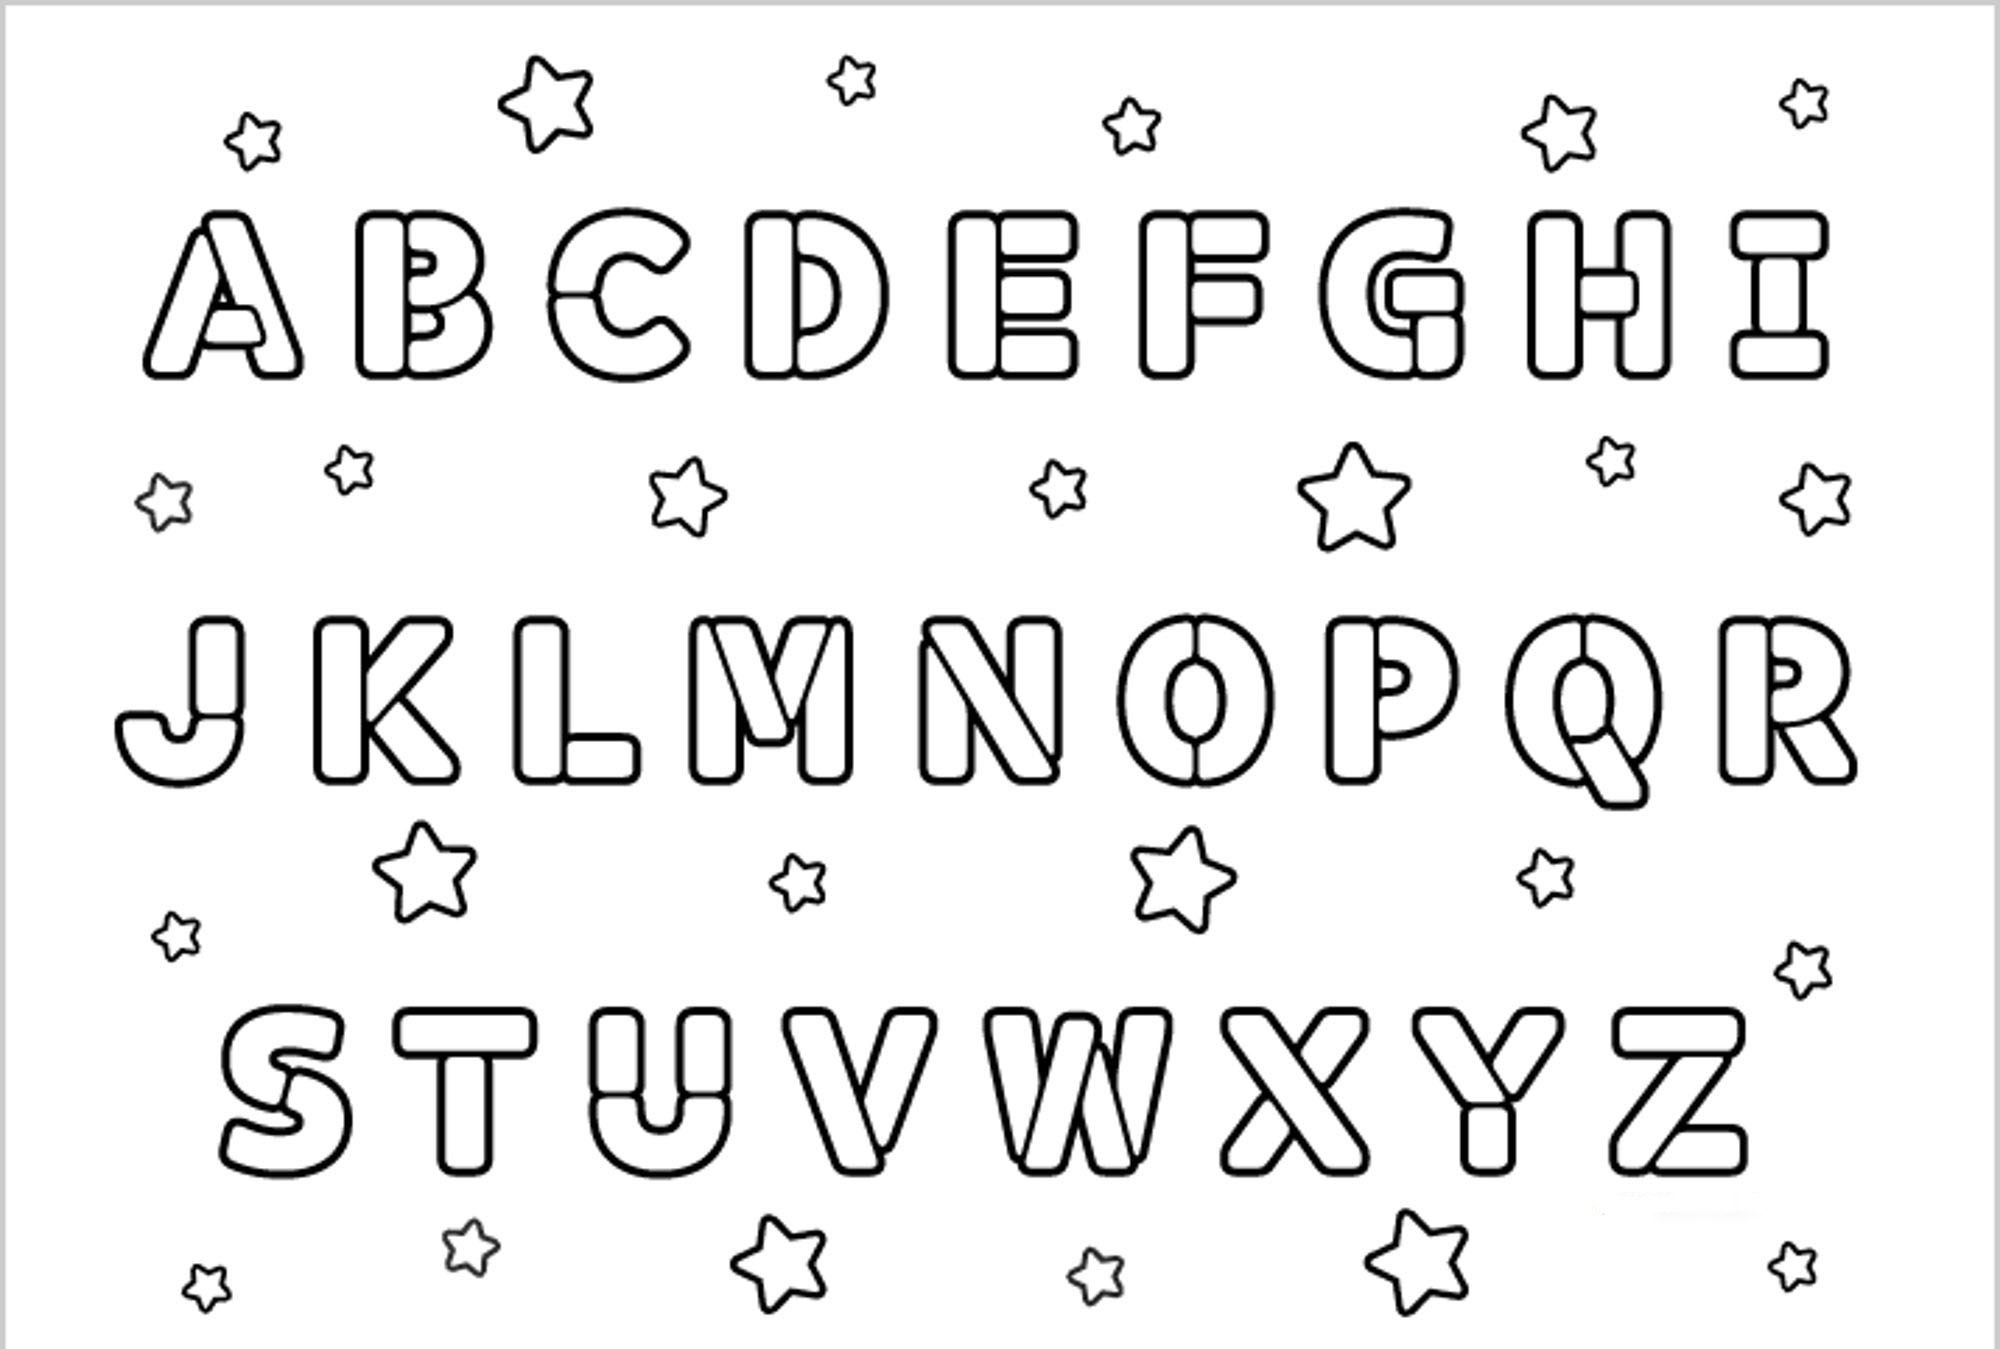 Coloring games in english - Printable Coloring Pages Alphabet